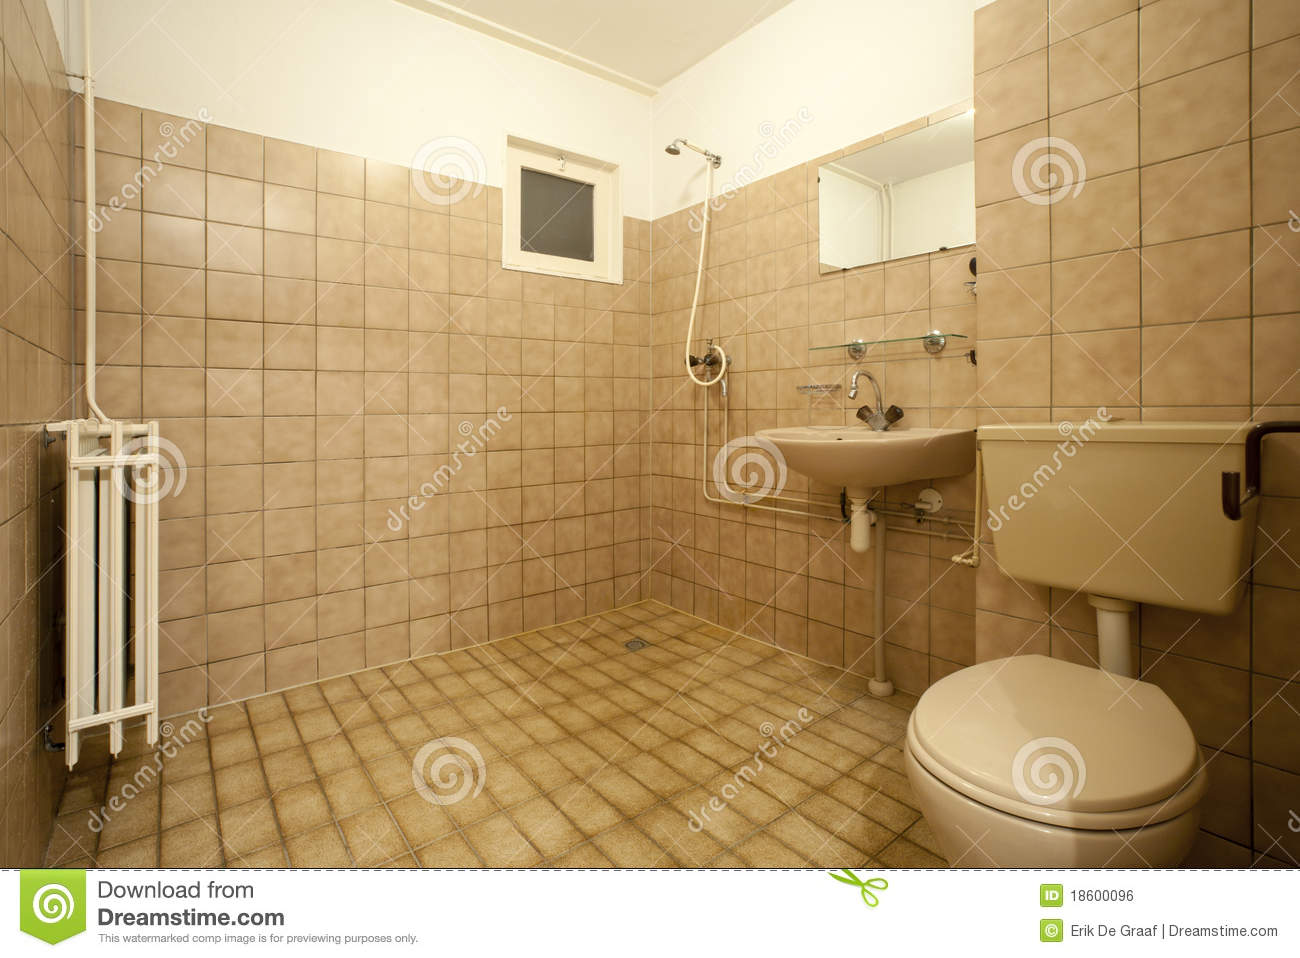 old bathroom stock photo image of brown empty wall. Black Bedroom Furniture Sets. Home Design Ideas